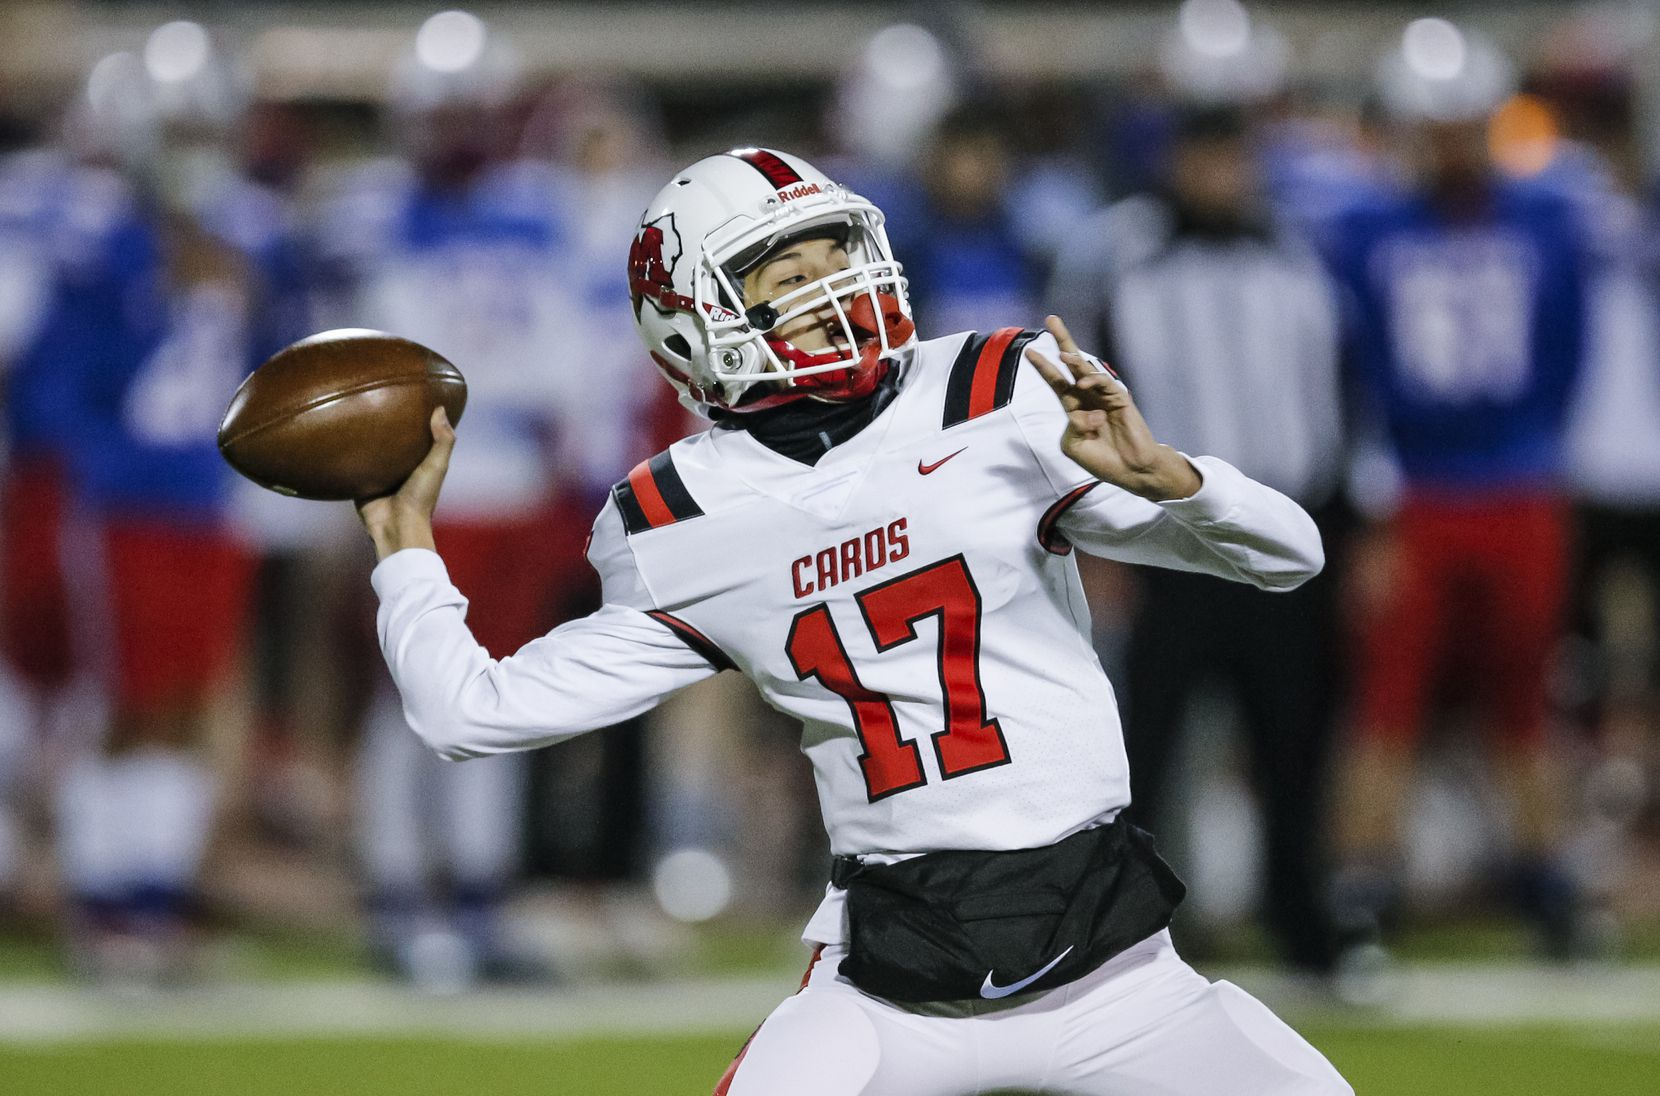 Irving MacArthur sophomore quarterback Glendon Casas-Willis (17) throws during the first half of a high school playoff football game against JJ Pearce at Eagle-Mustang Stadium in Richardson, Thursday, December 3, 2020. (Brandon Wade/Special Contributor)